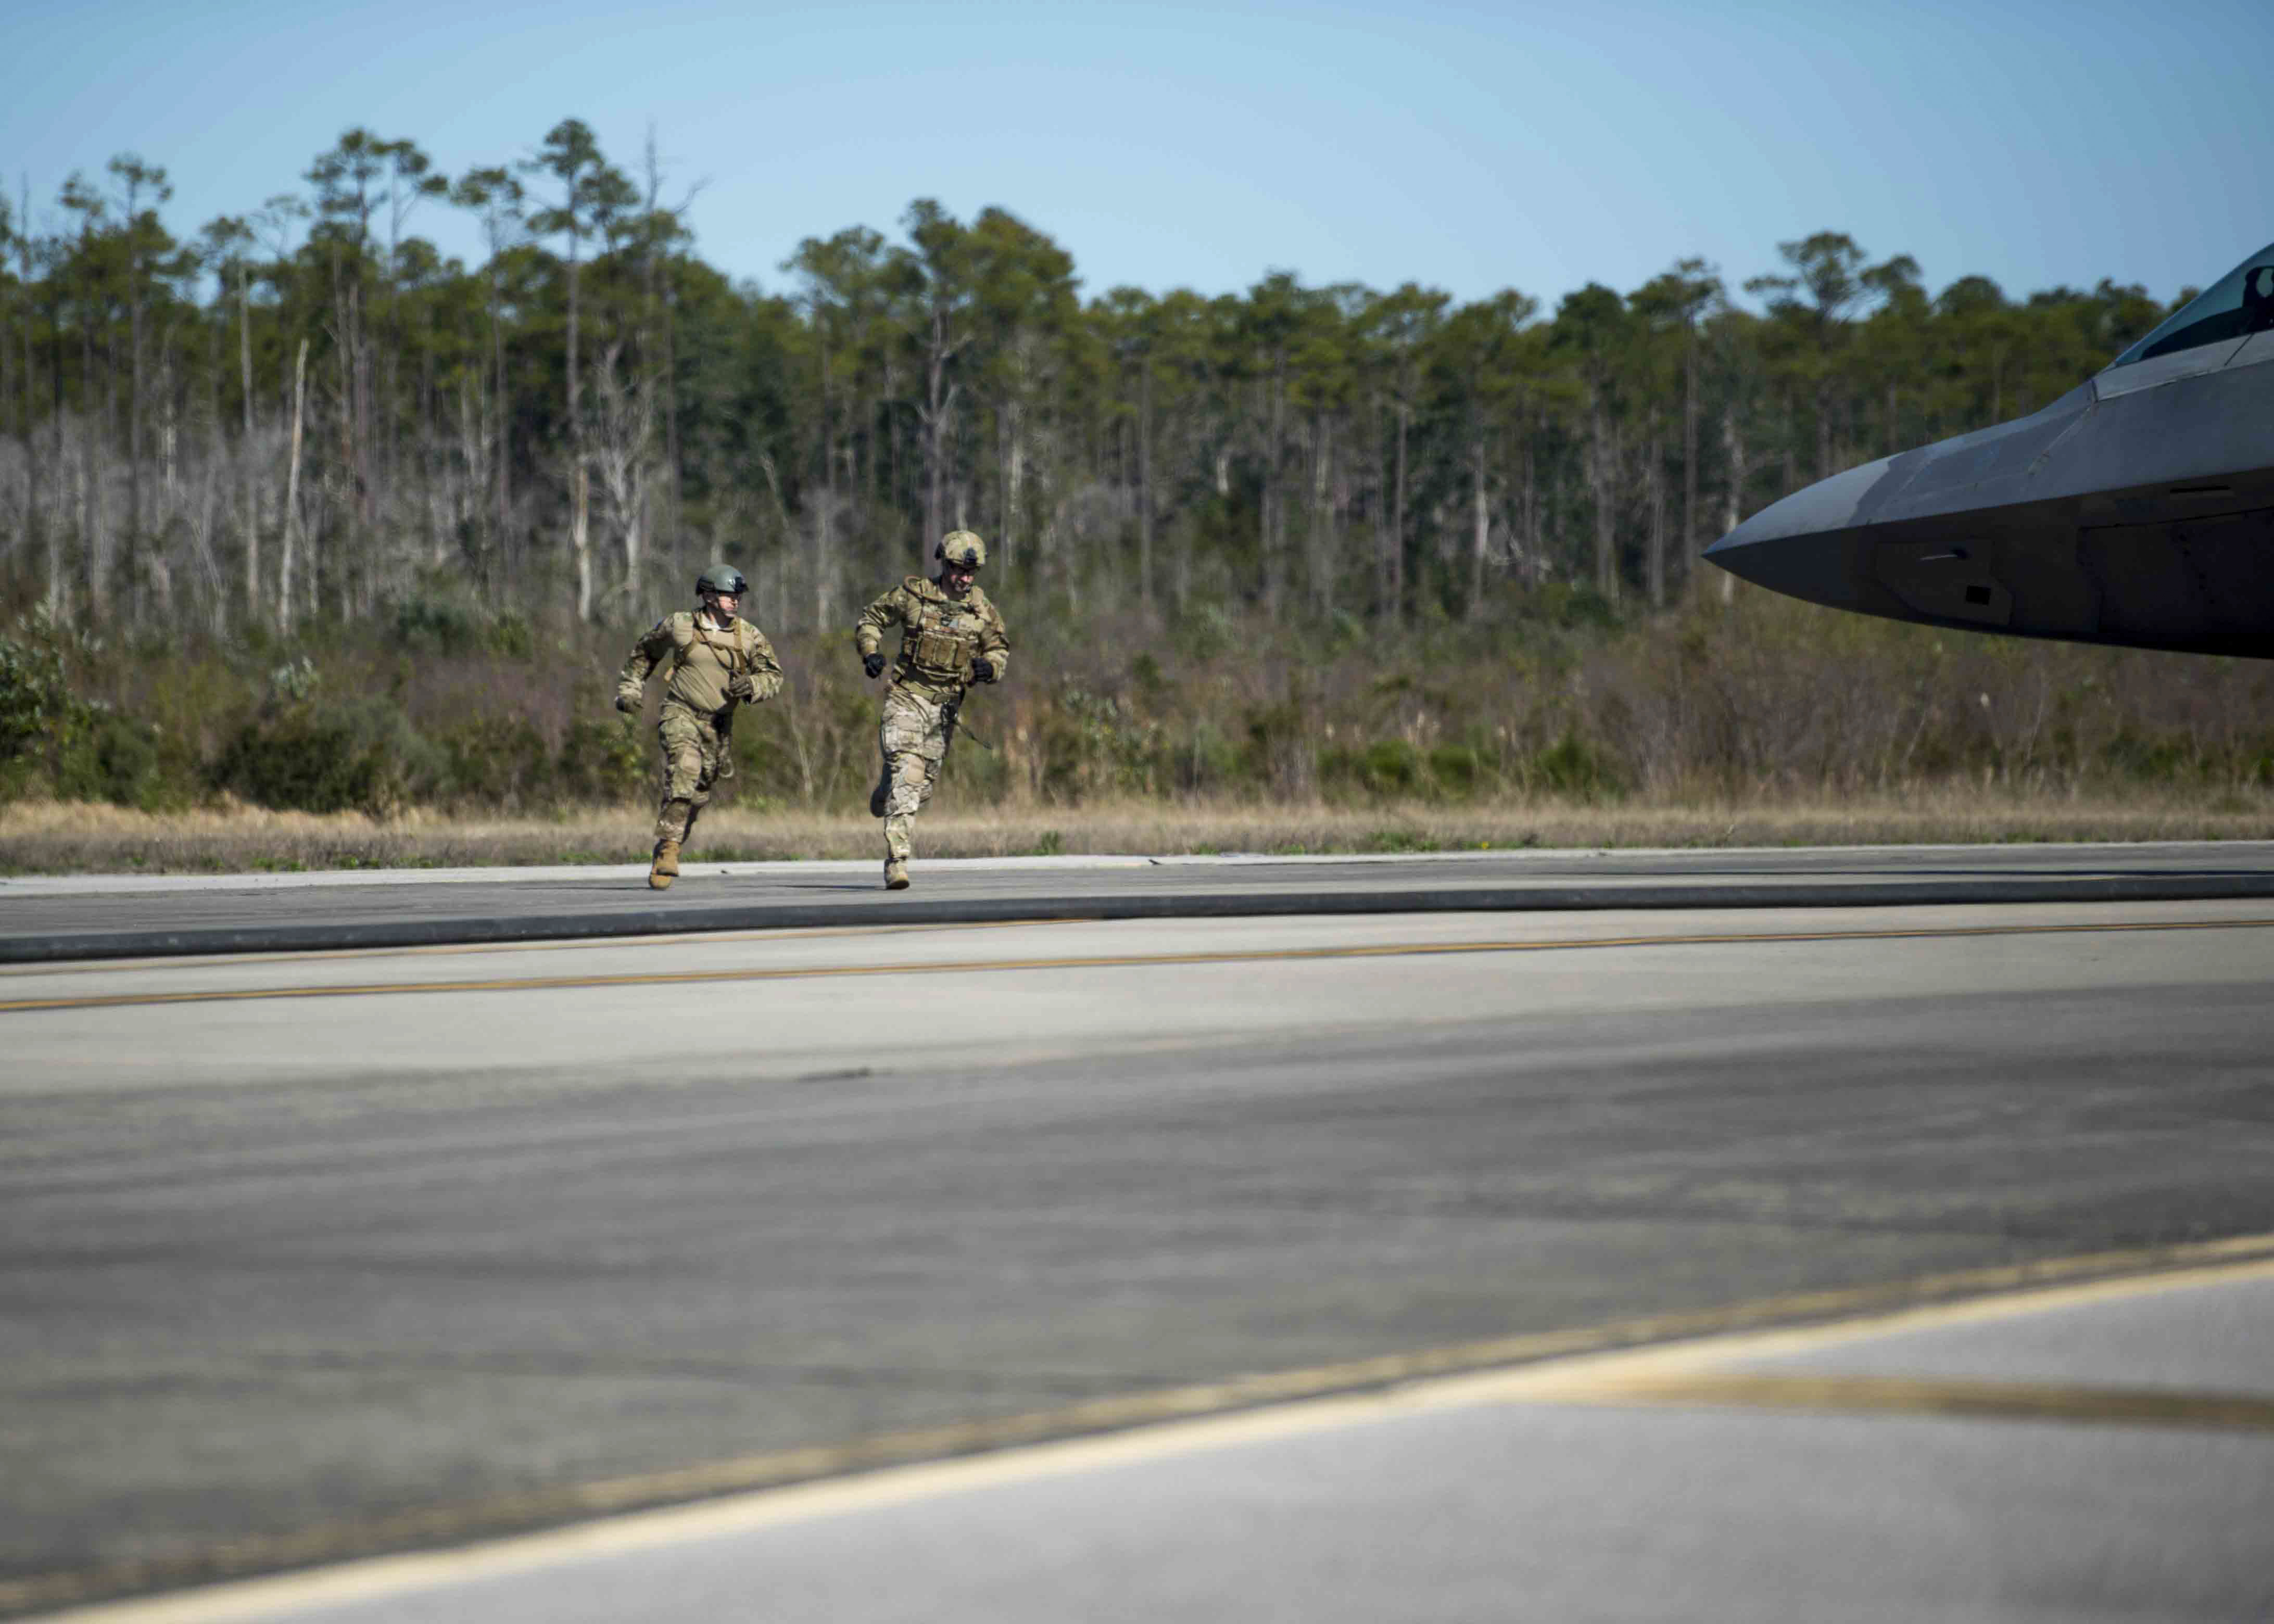 hurlburt field Find hotels and motels near hurlburt field see military and government discounts learn about on-base lodging.